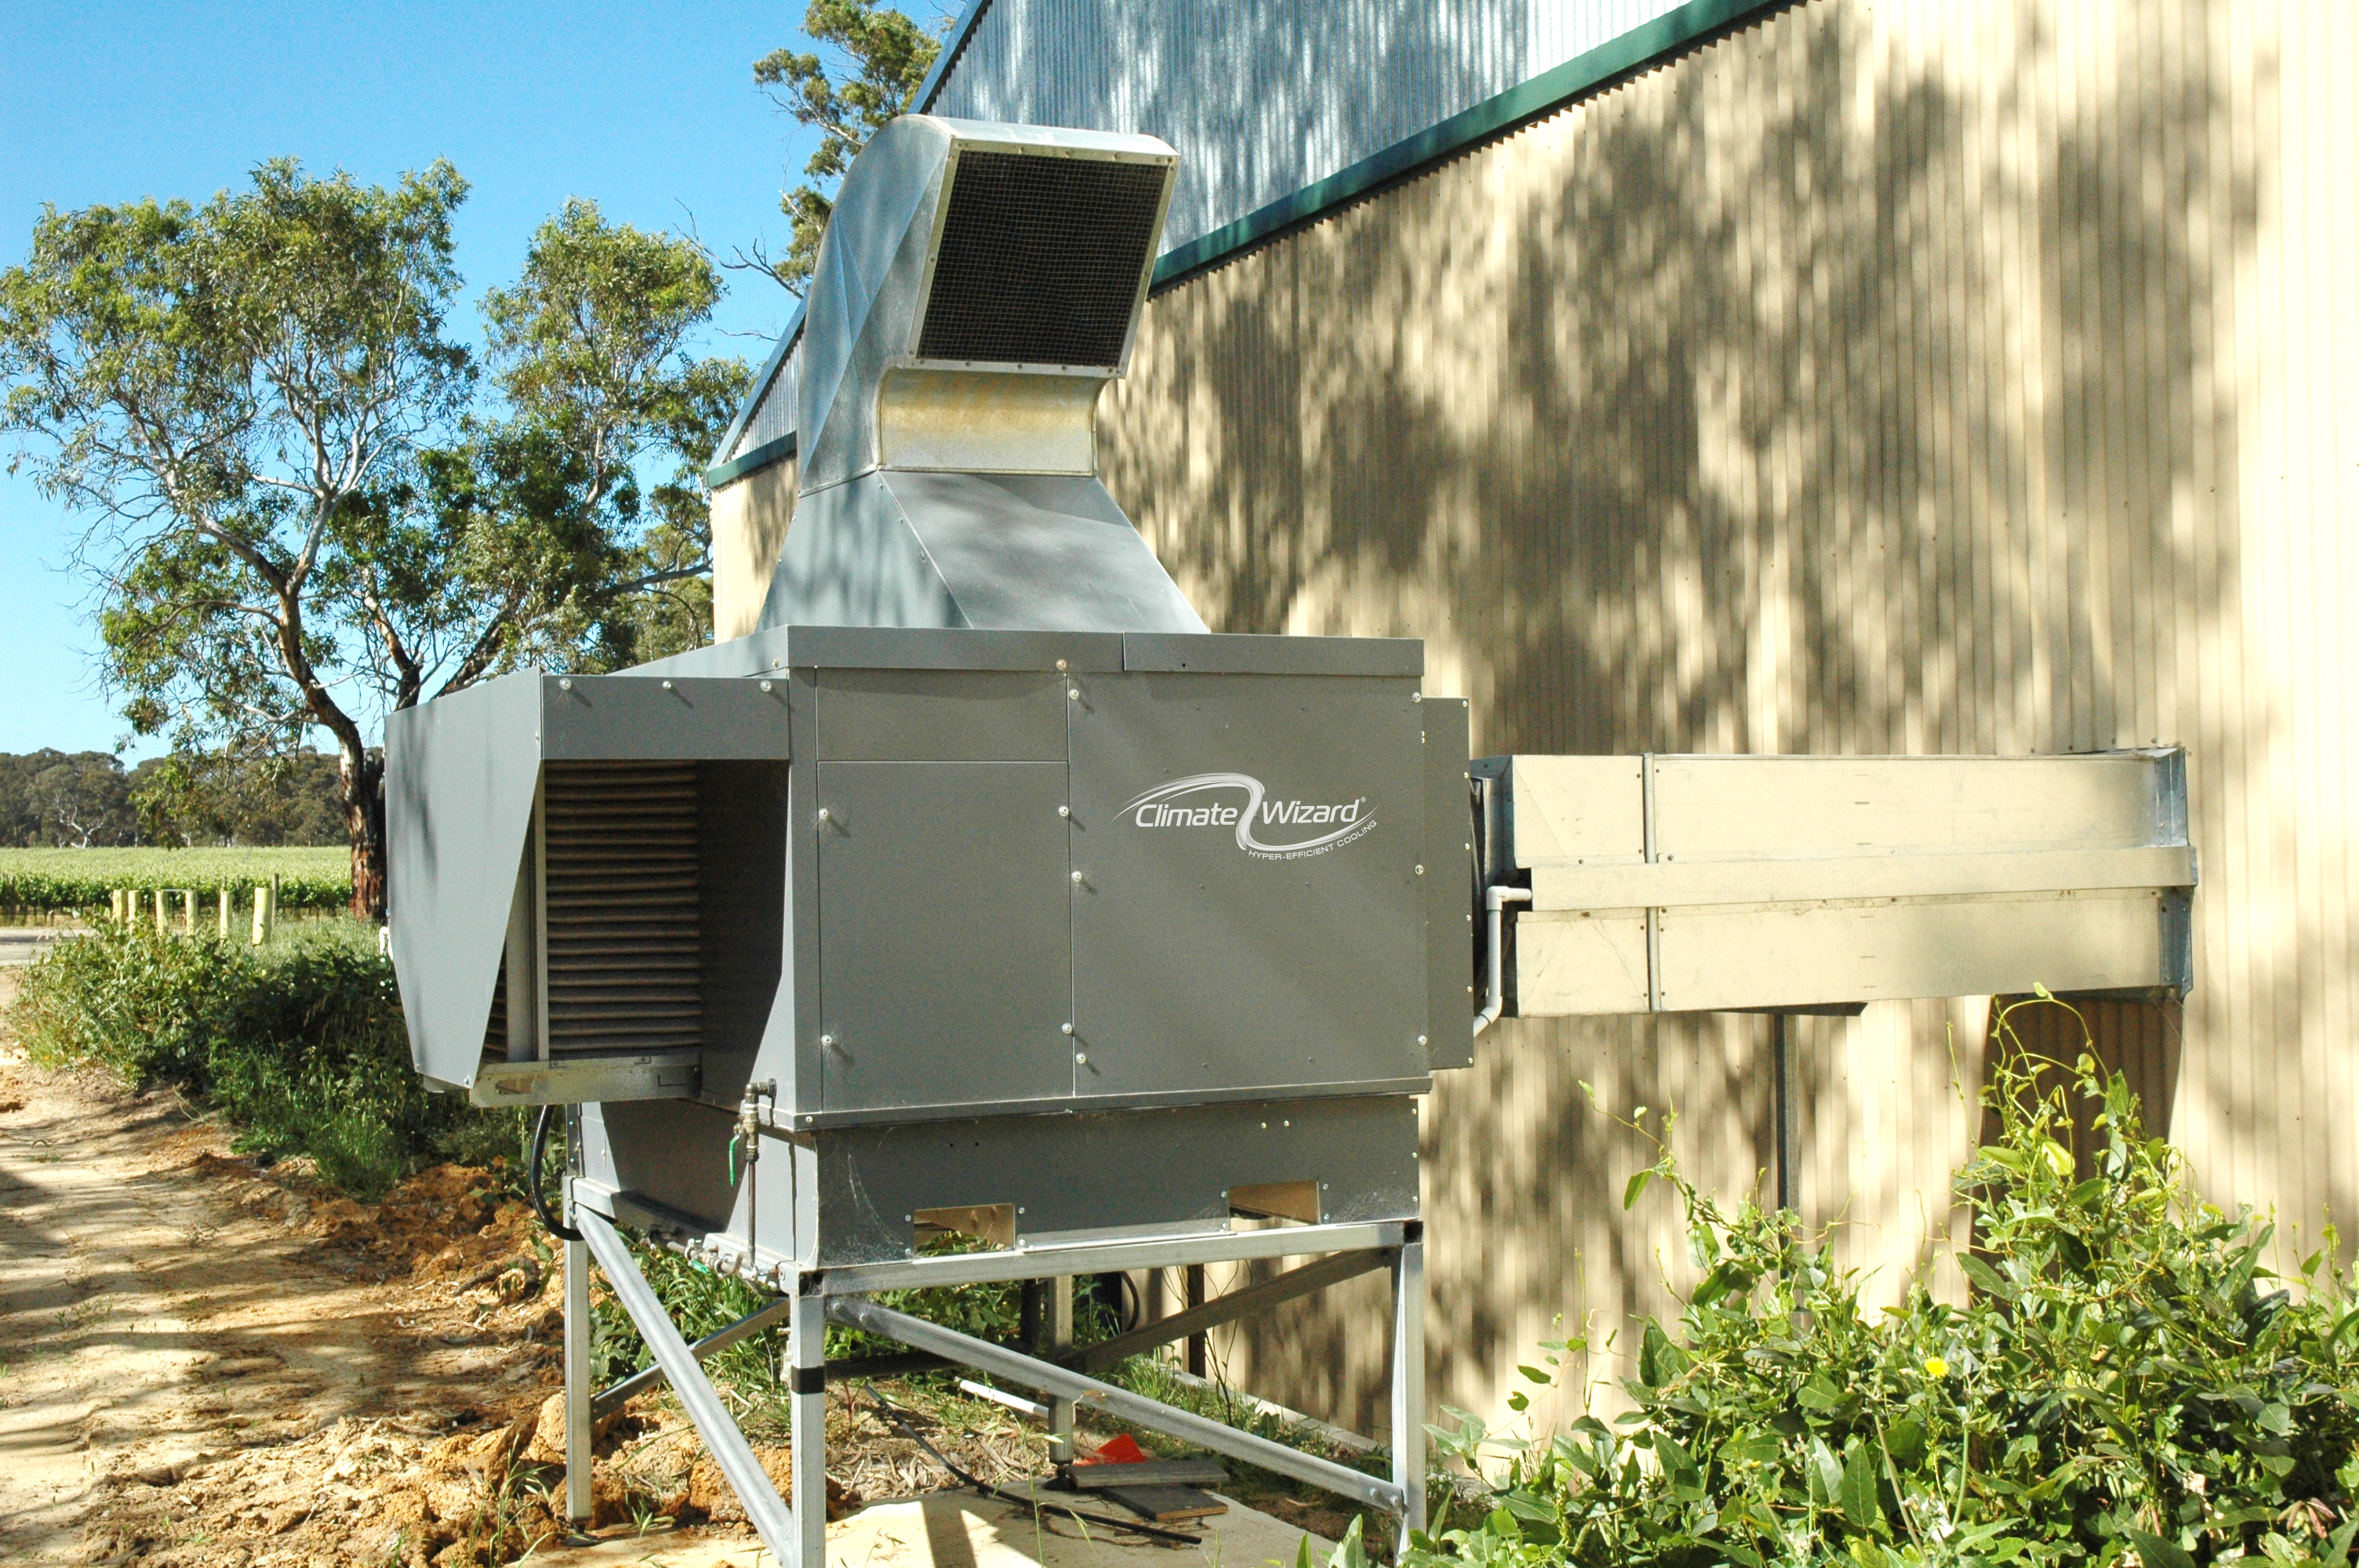 #2280A9 FEATURE: Winemakers Benefit From Australian Barrel Cooling  Best 8413 Air Conditioning Contractors Adelaide photos with 3008x2000 px on helpvideos.info - Air Conditioners, Air Coolers and more